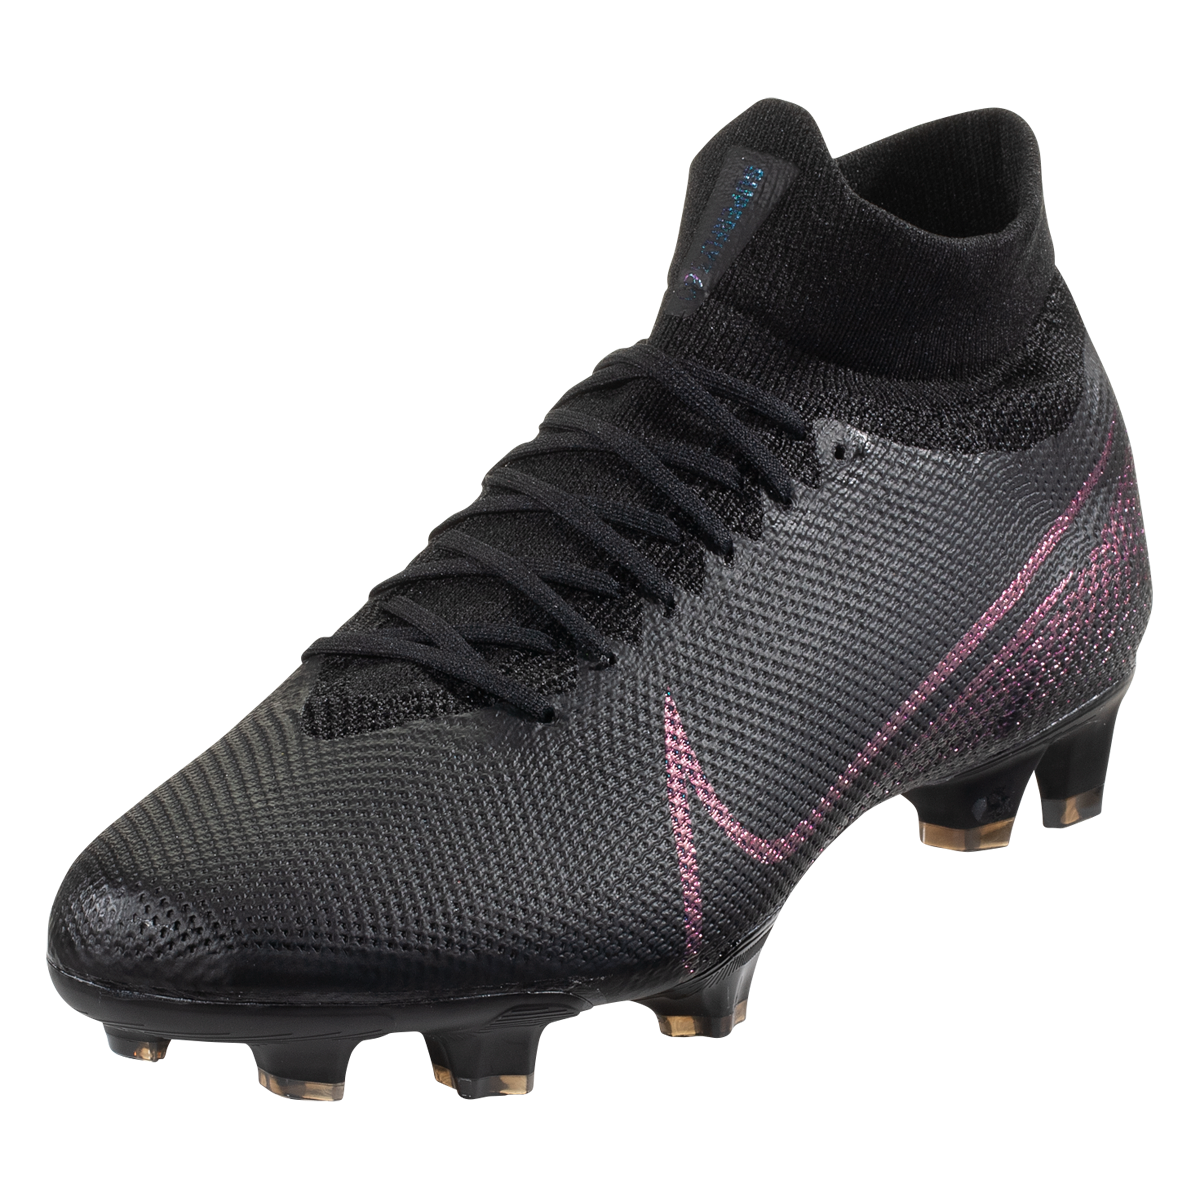 Nike Mercurial Superfly 7 Pro Fg Soccer Cleat Black Black 4 5 In 2020 Soccer Cleats Nike Soccer Cleats Womens Soccer Cleats